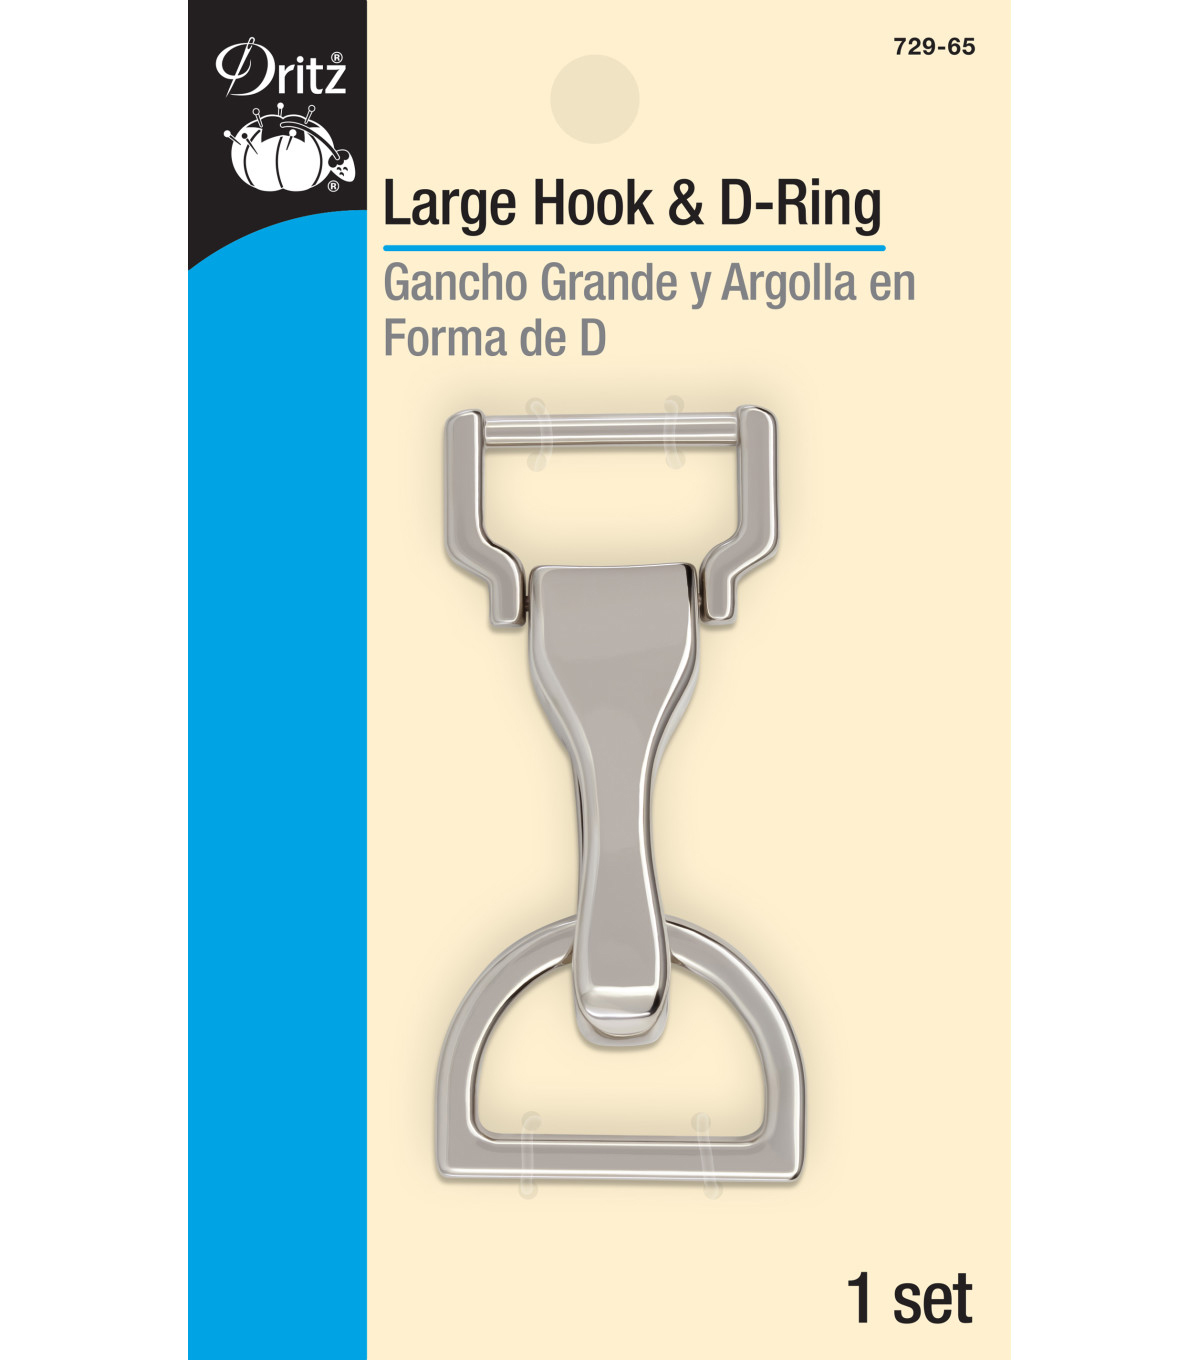 Dritz Large Hook & D-Ring-Nickel